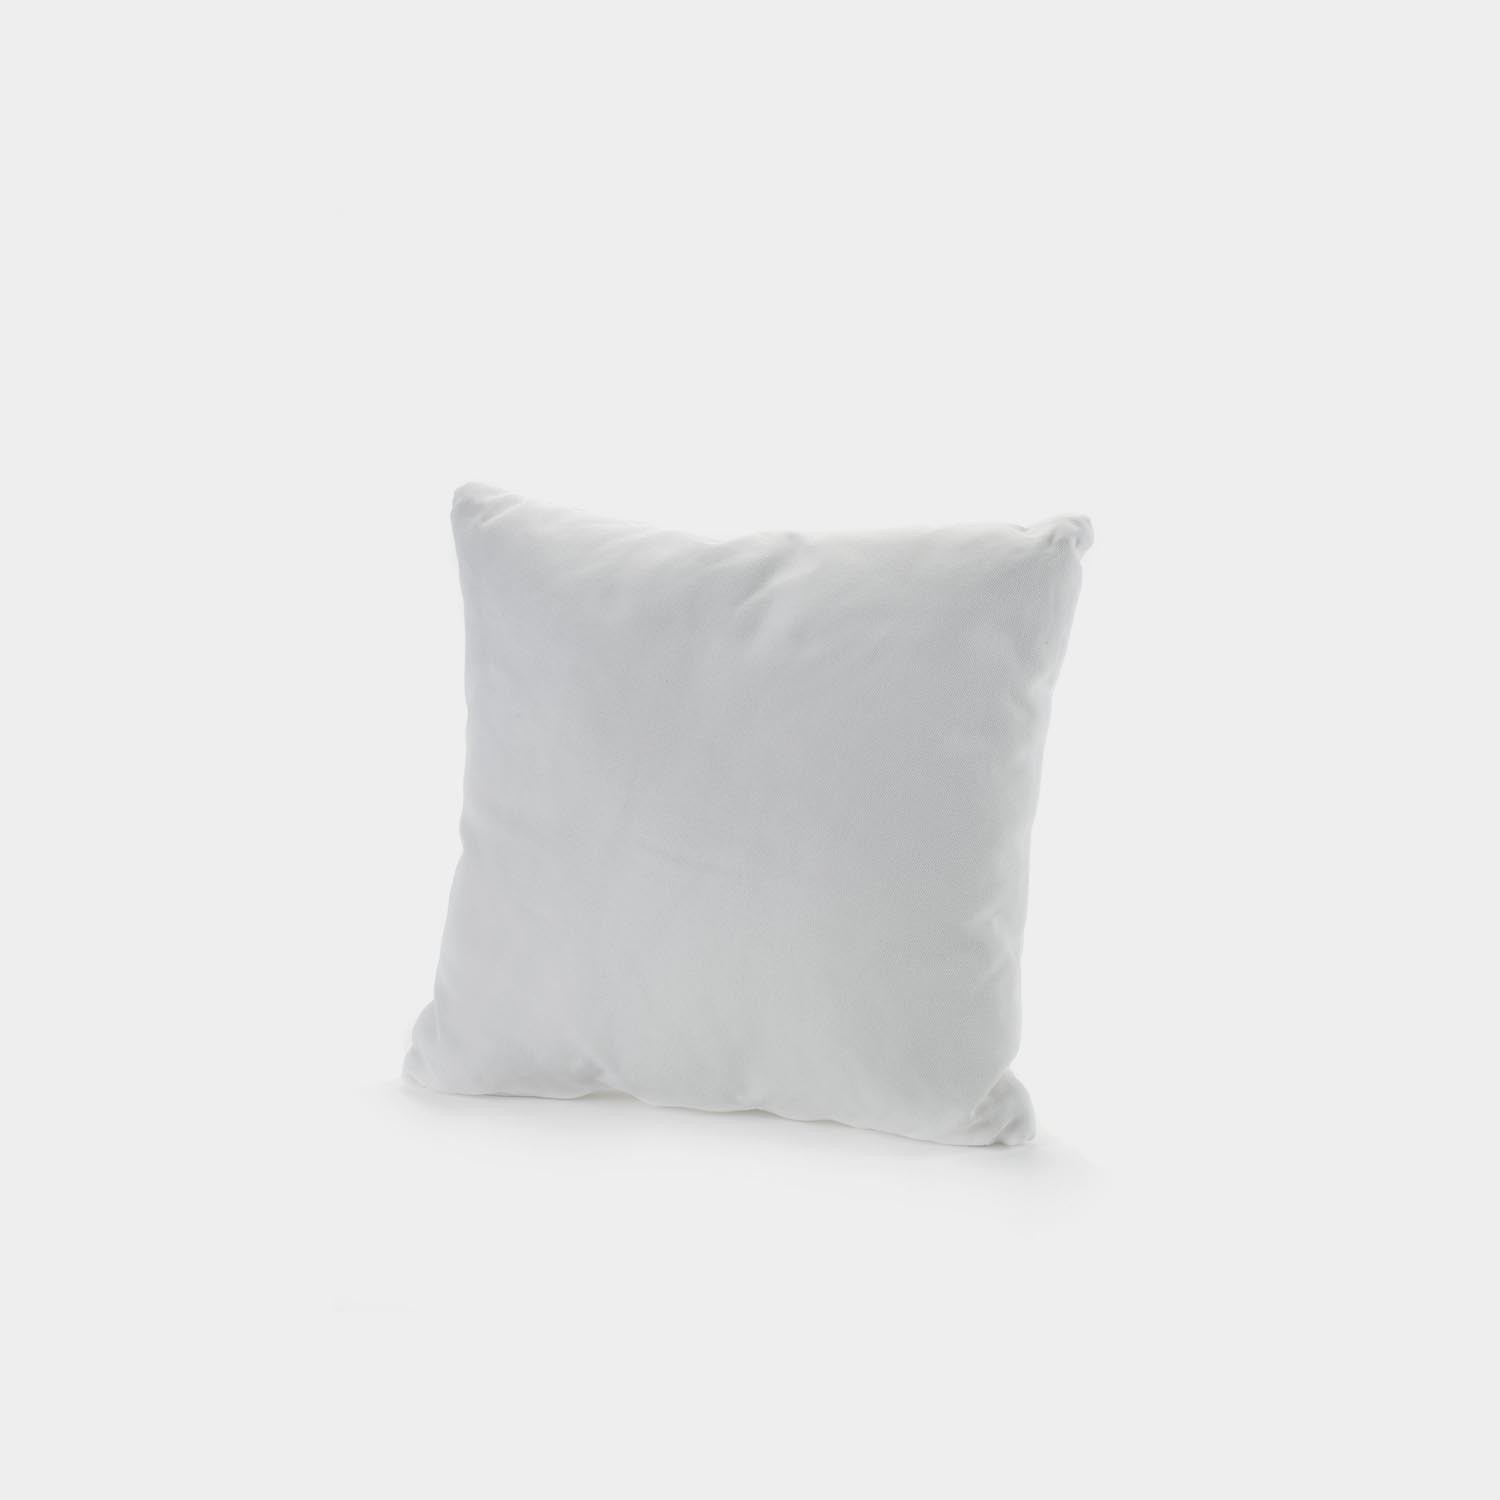 Fish & Fish Decorative Square Cushion, White/Alba